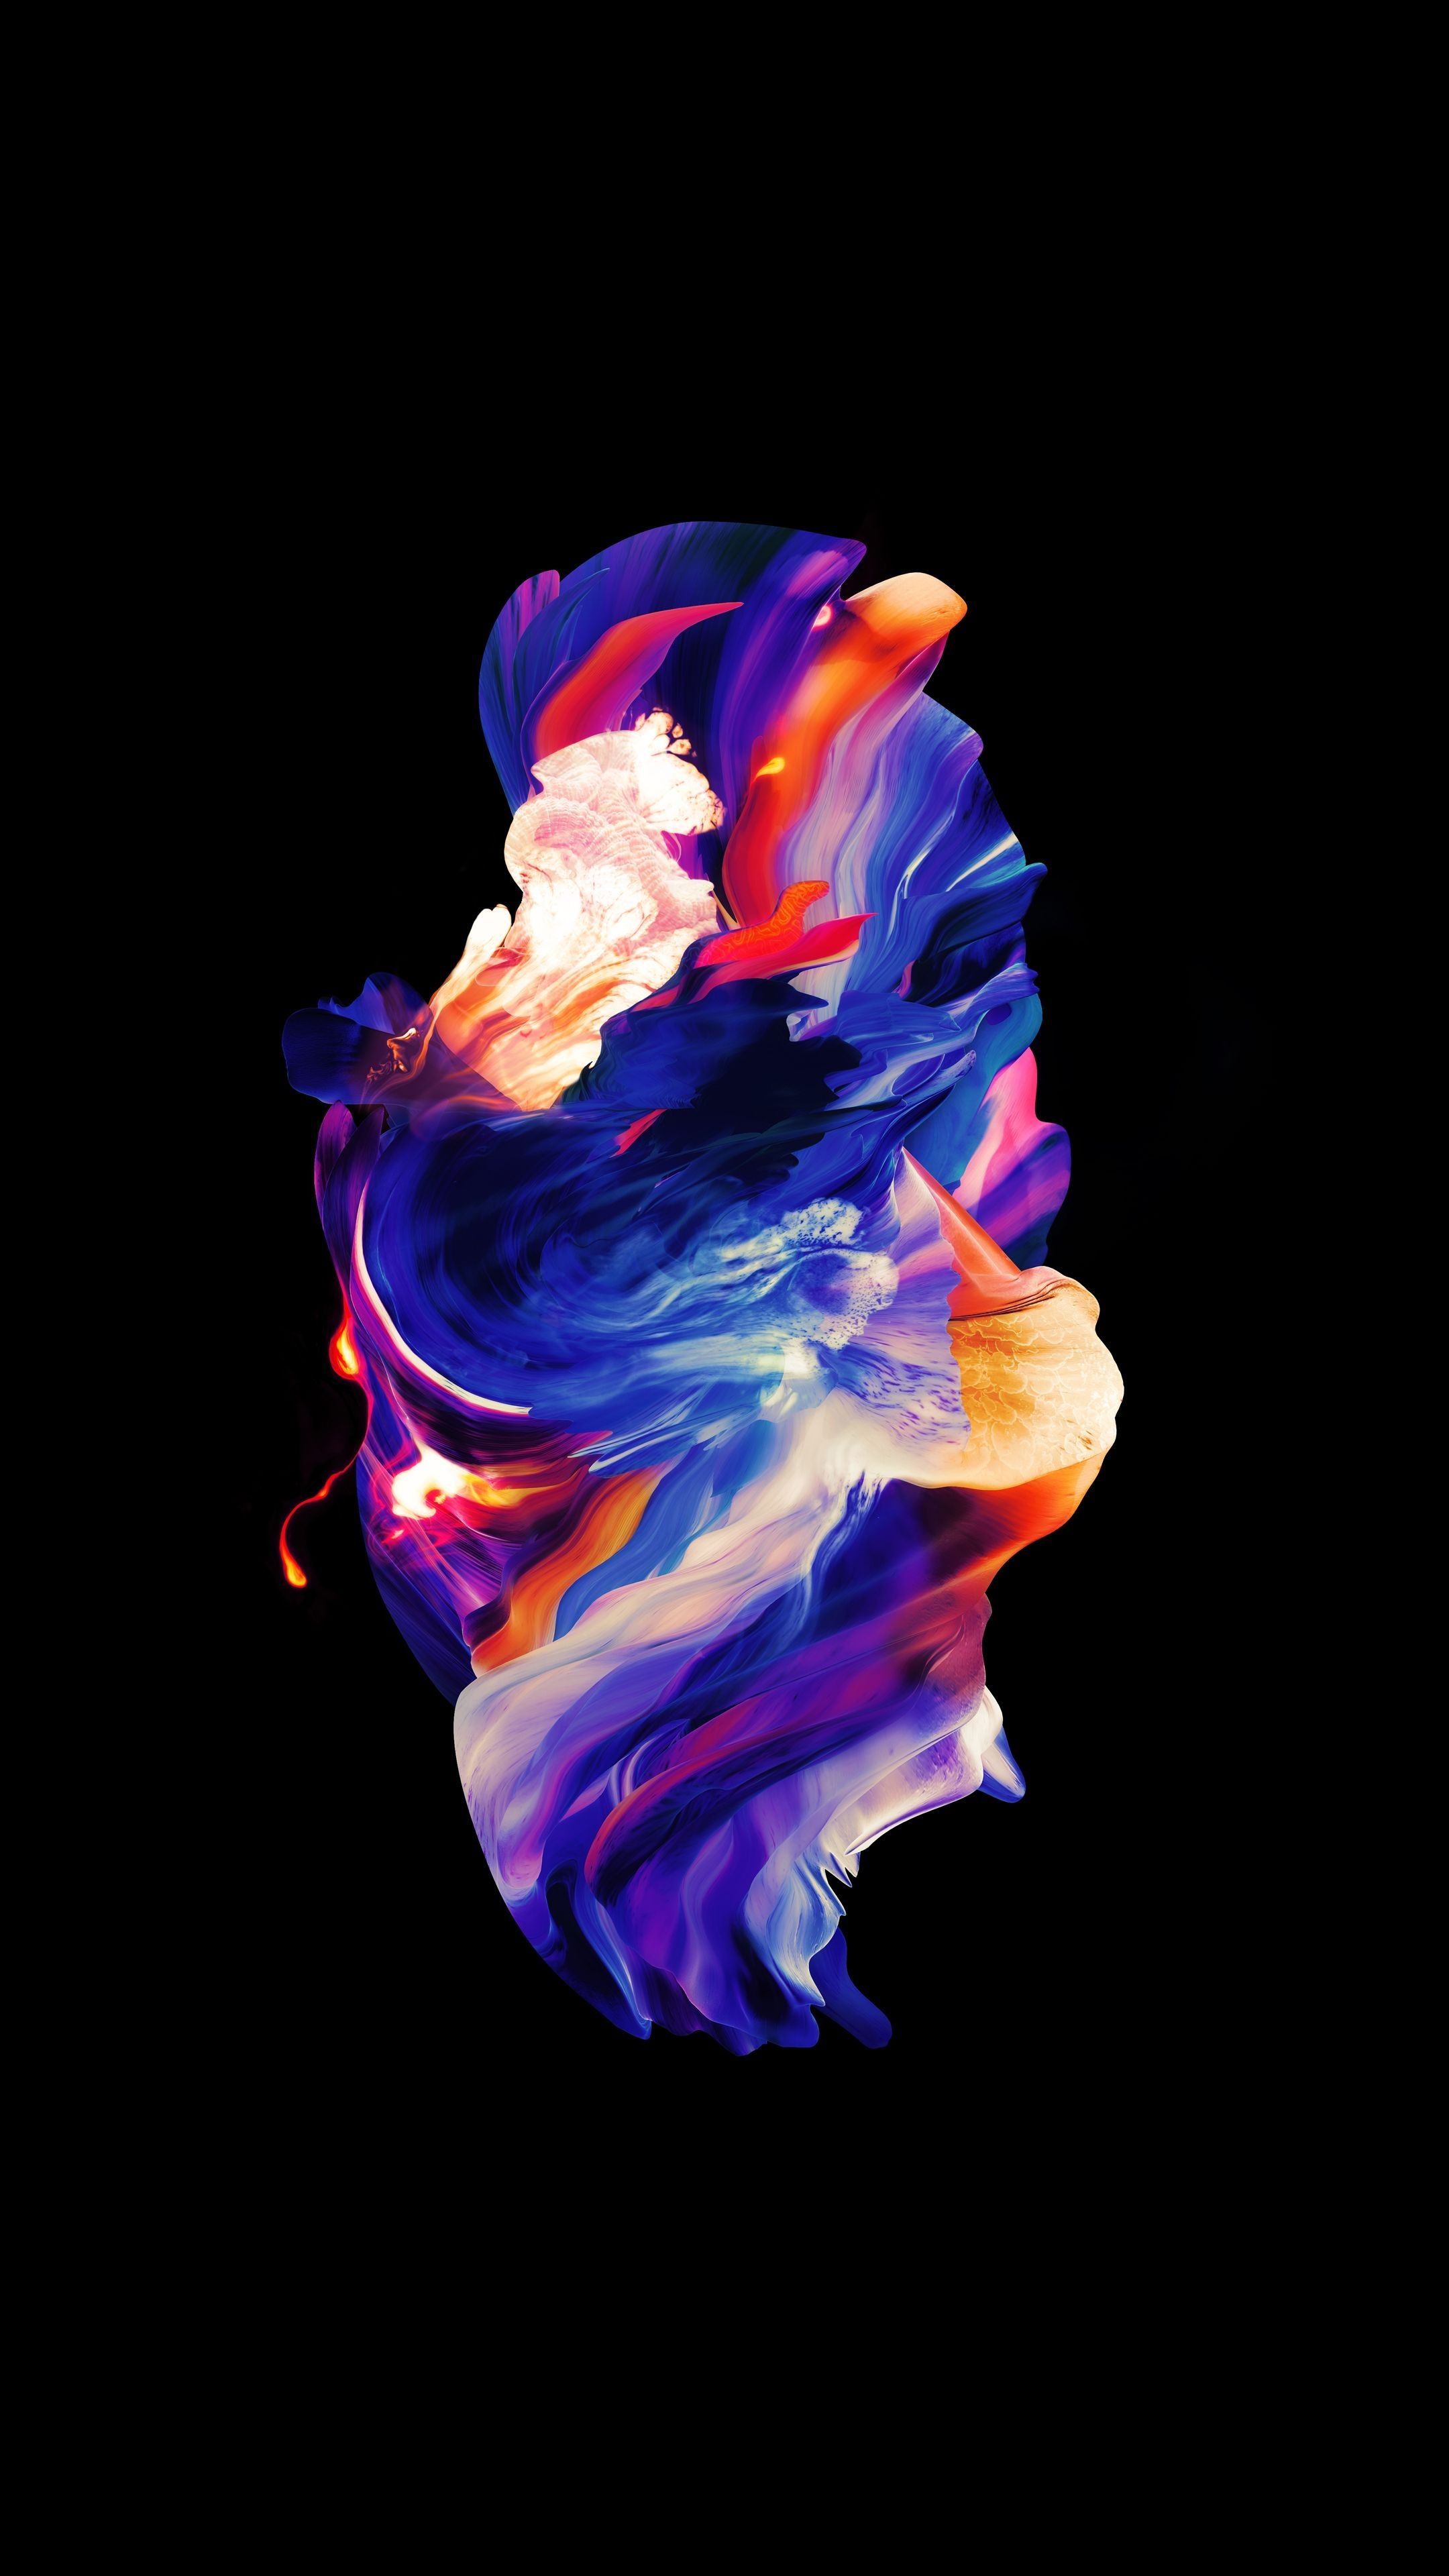 Oneplus 5 Fonds D Ecran Amoled Black Edit 4k 2160x3840 In 2020 Oneplus Wallpapers Minimalist Wallpaper Abstract Iphone Wallpaper